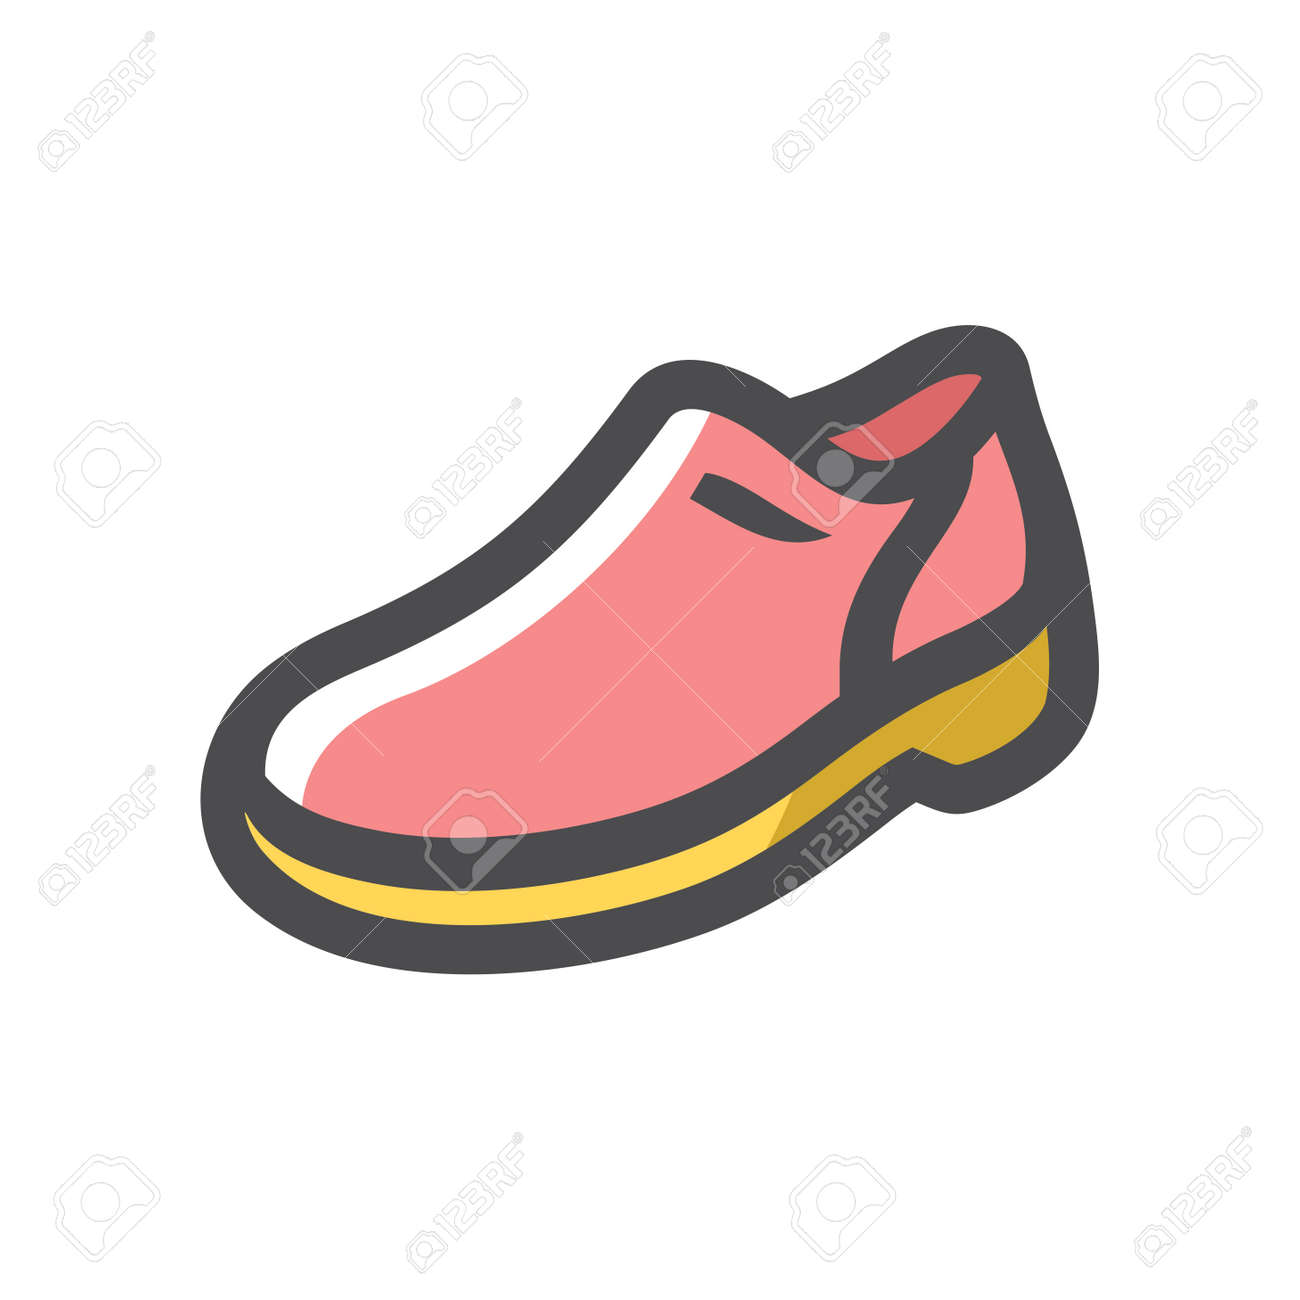 Mens pink Shoes Vector icon Cartoon illustration - 169912864